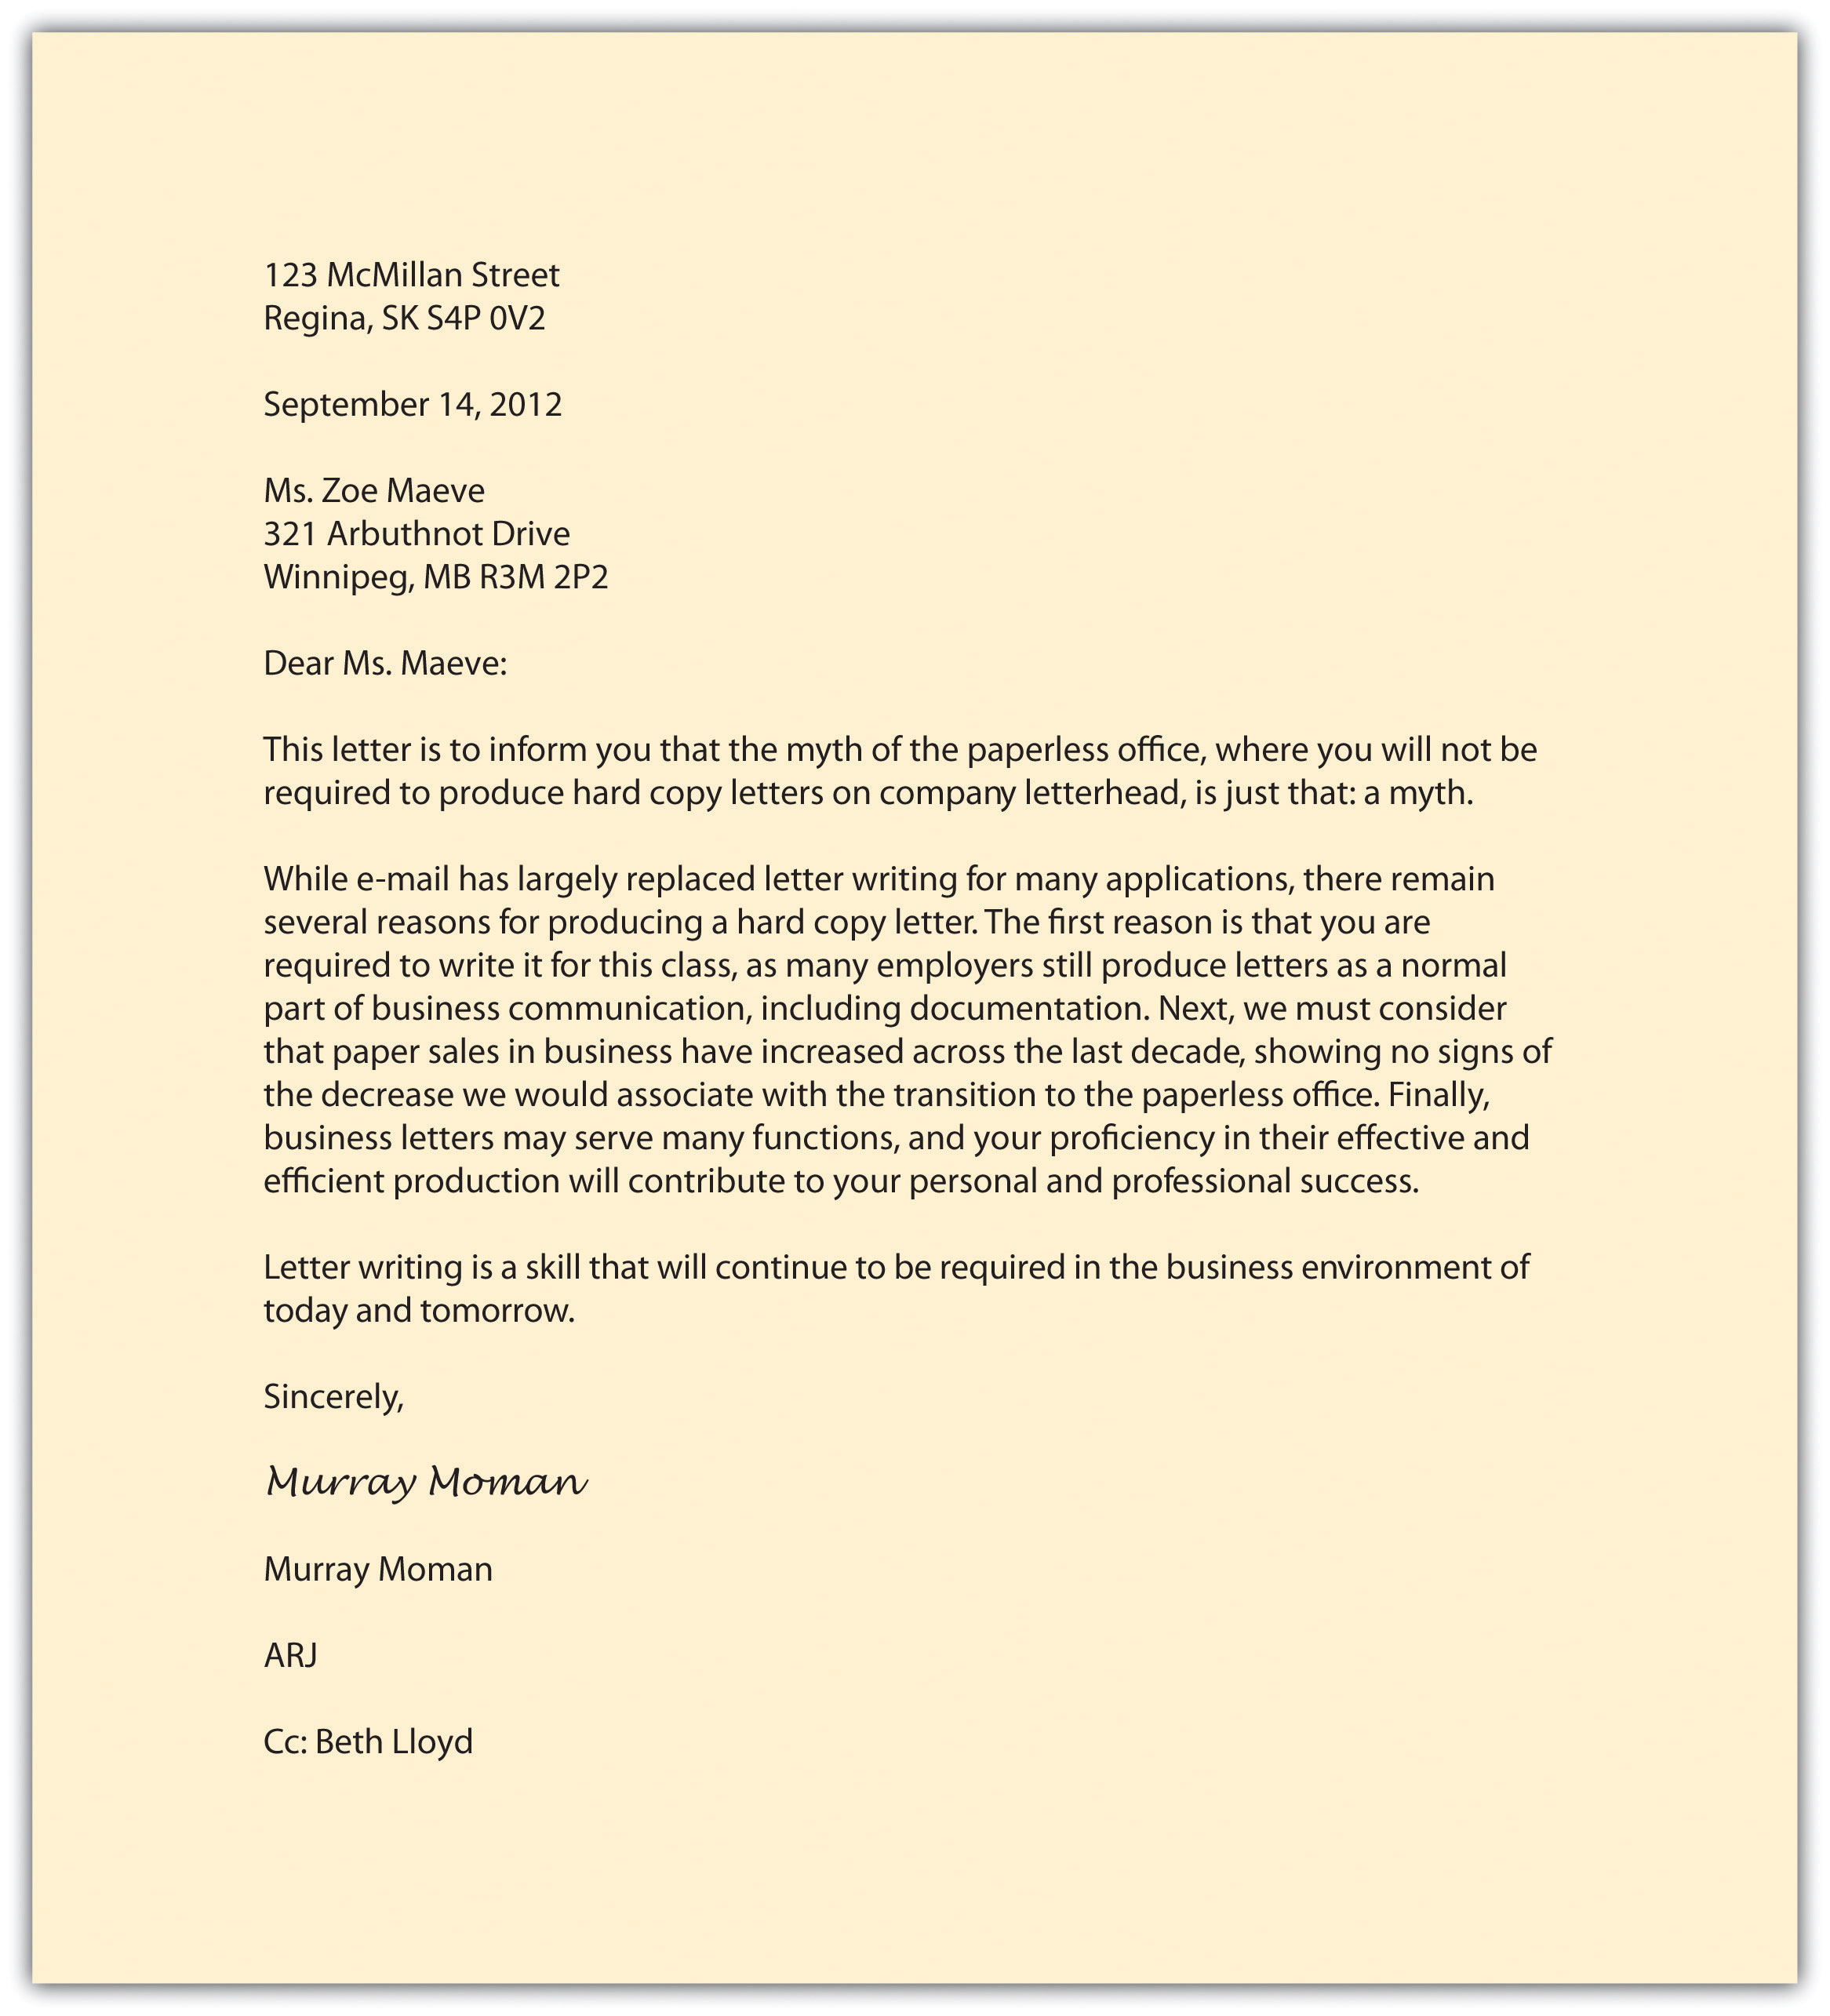 memorandums and letters business letter format sample dealer meet